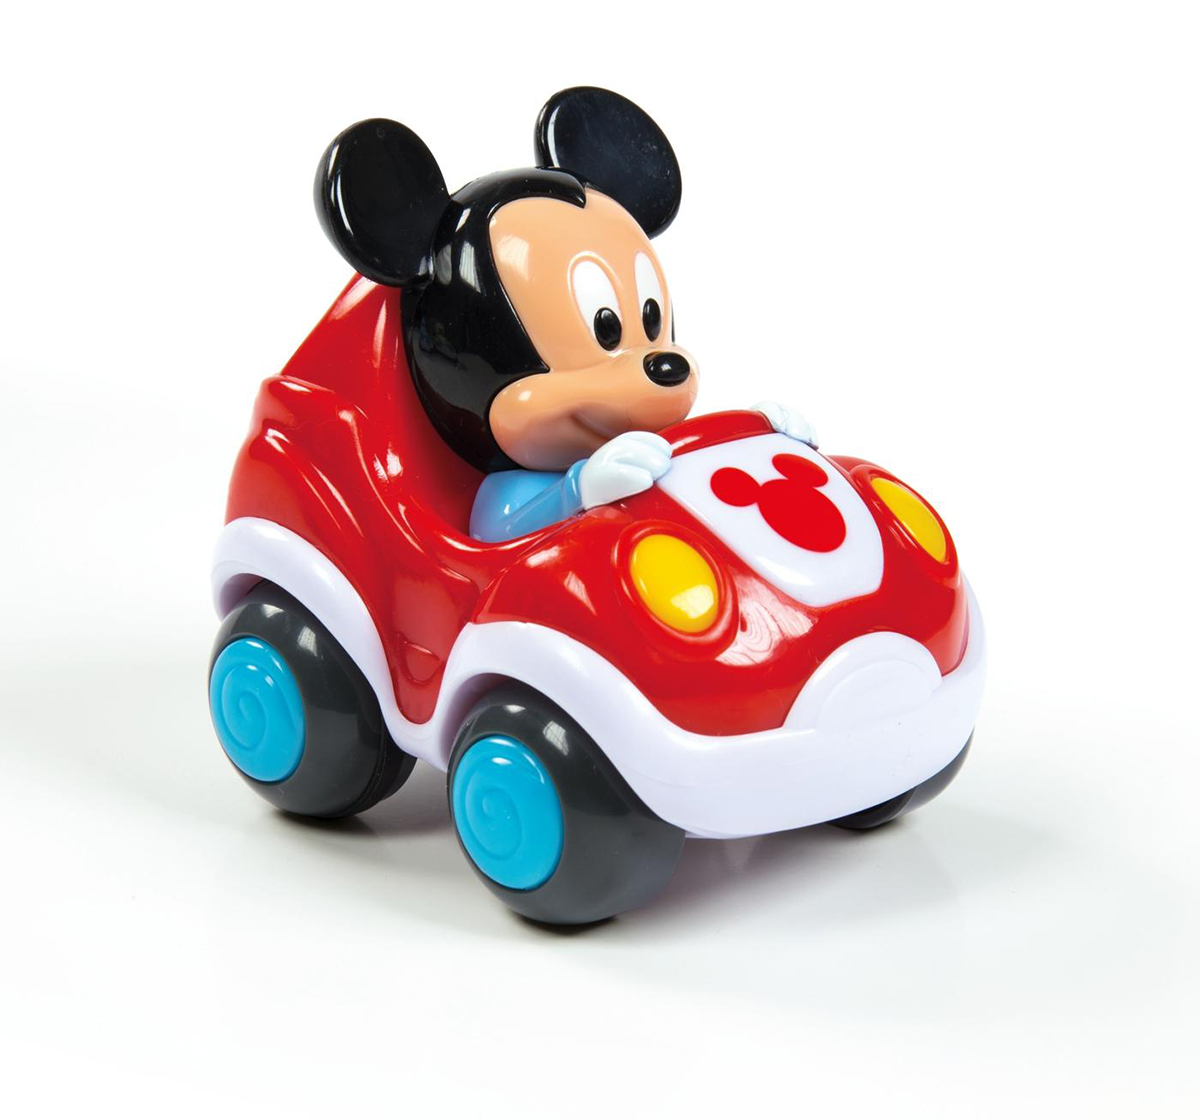 Disney | Disney Baby Pull Back Cars Activity Toy for Kids age 12M+